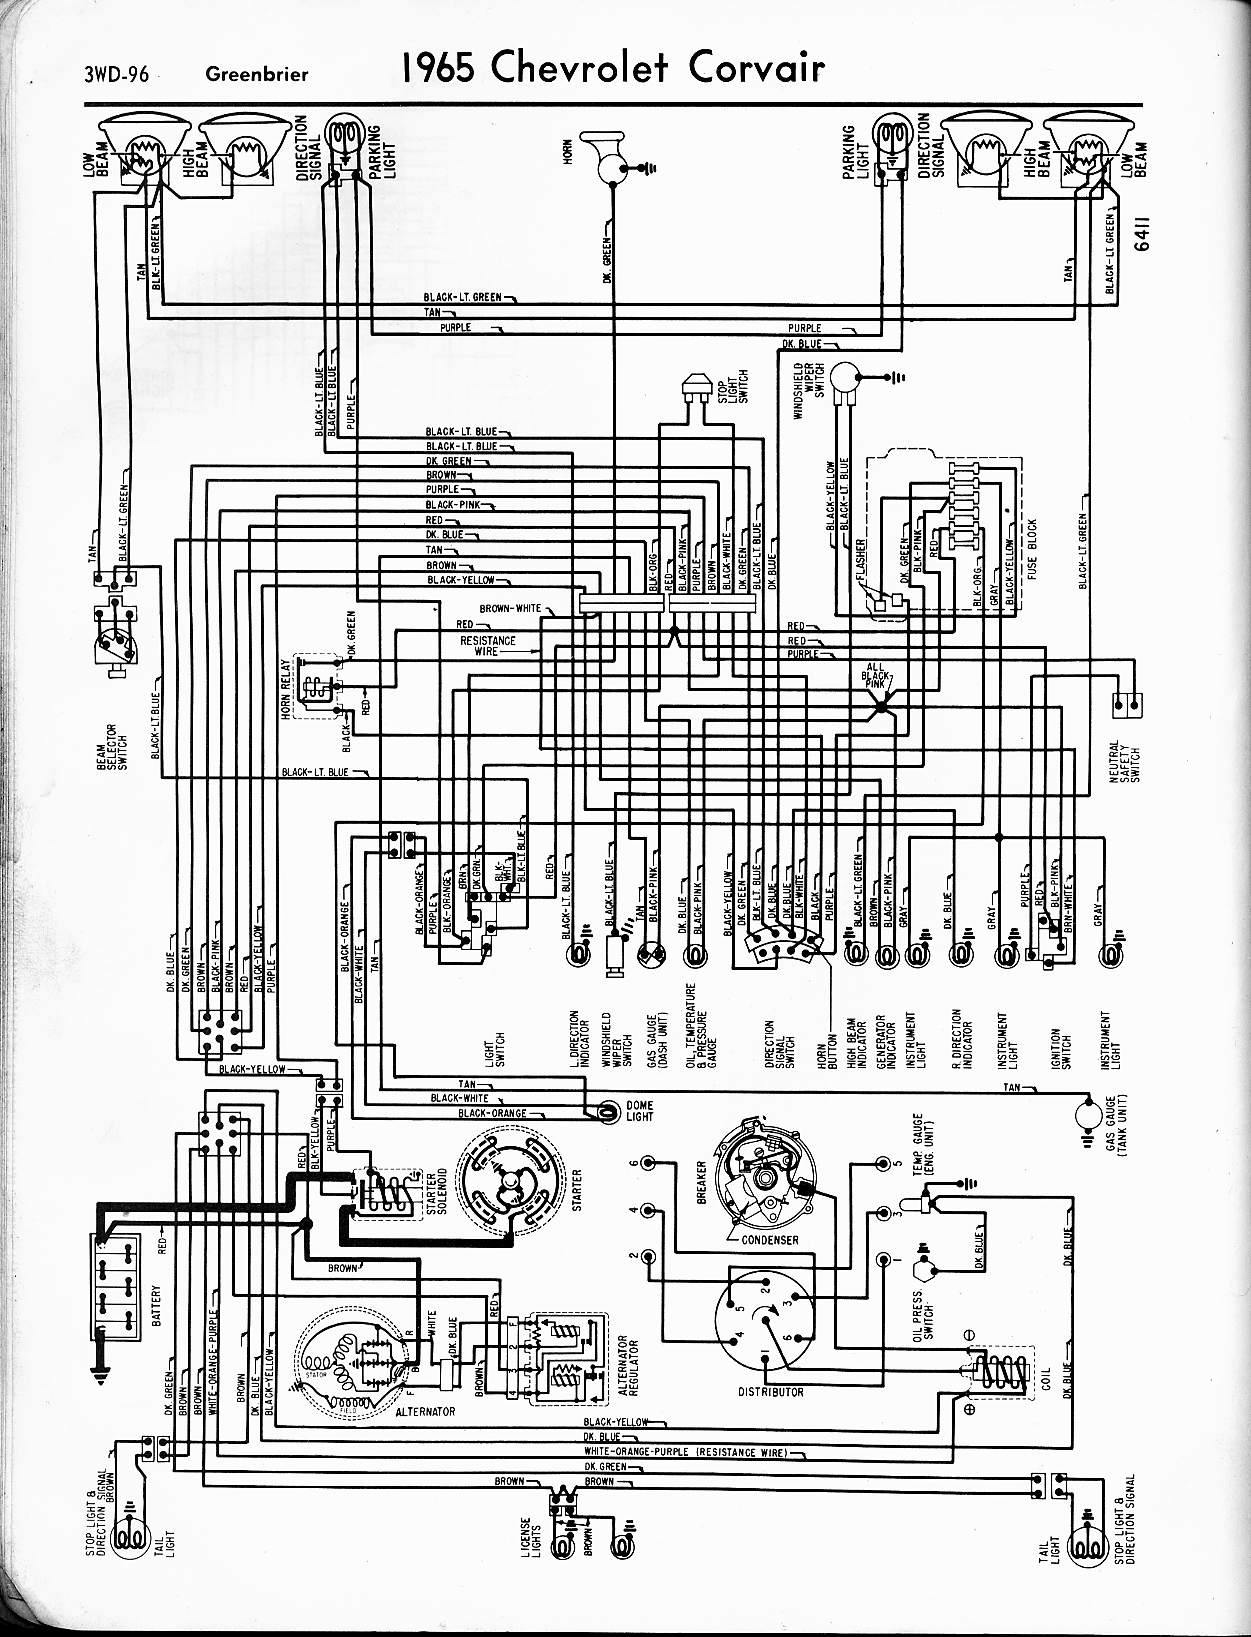 1974 Chevy Nova Wiring Harness Diagram on 1950 ford headlight switch wiring diagram